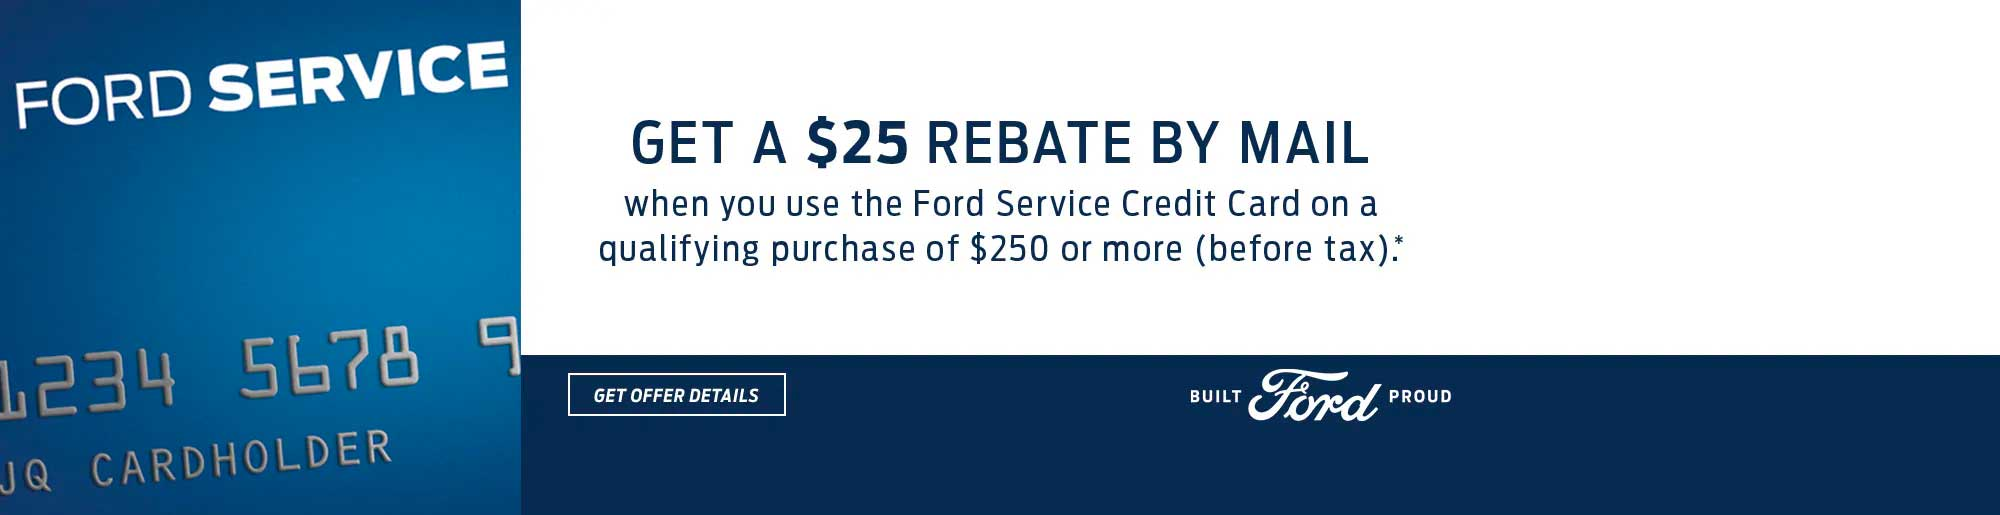 Ford Service